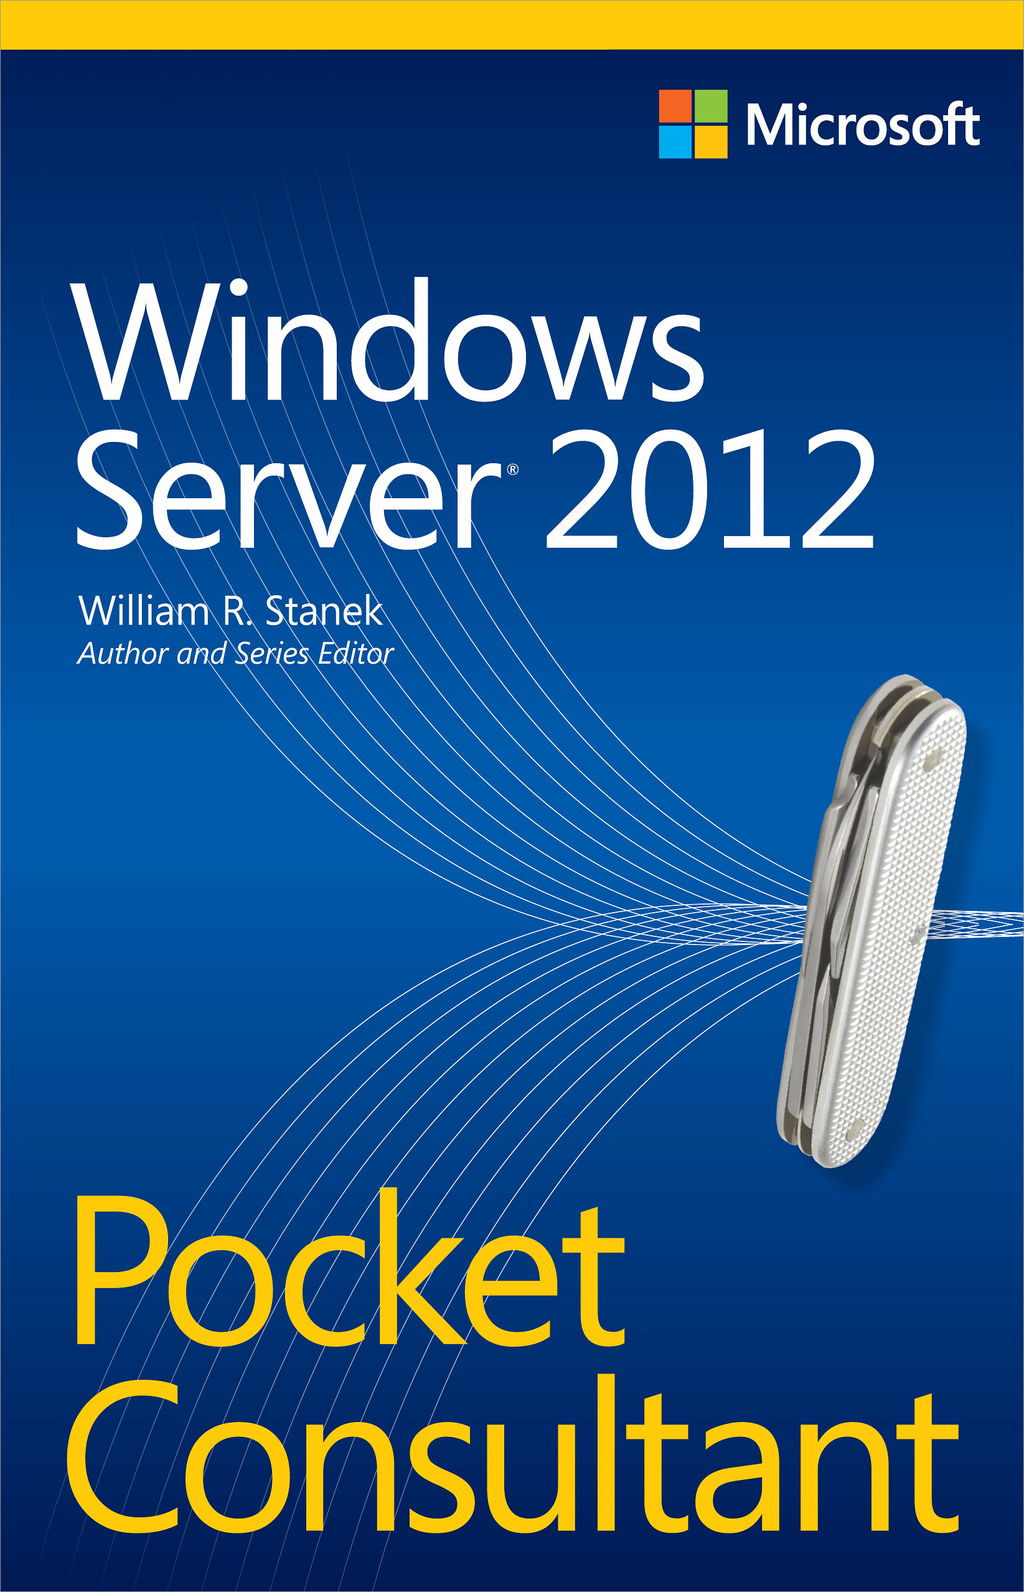 Windows Server 2012 Pocket Consultant By: William R. Stanek